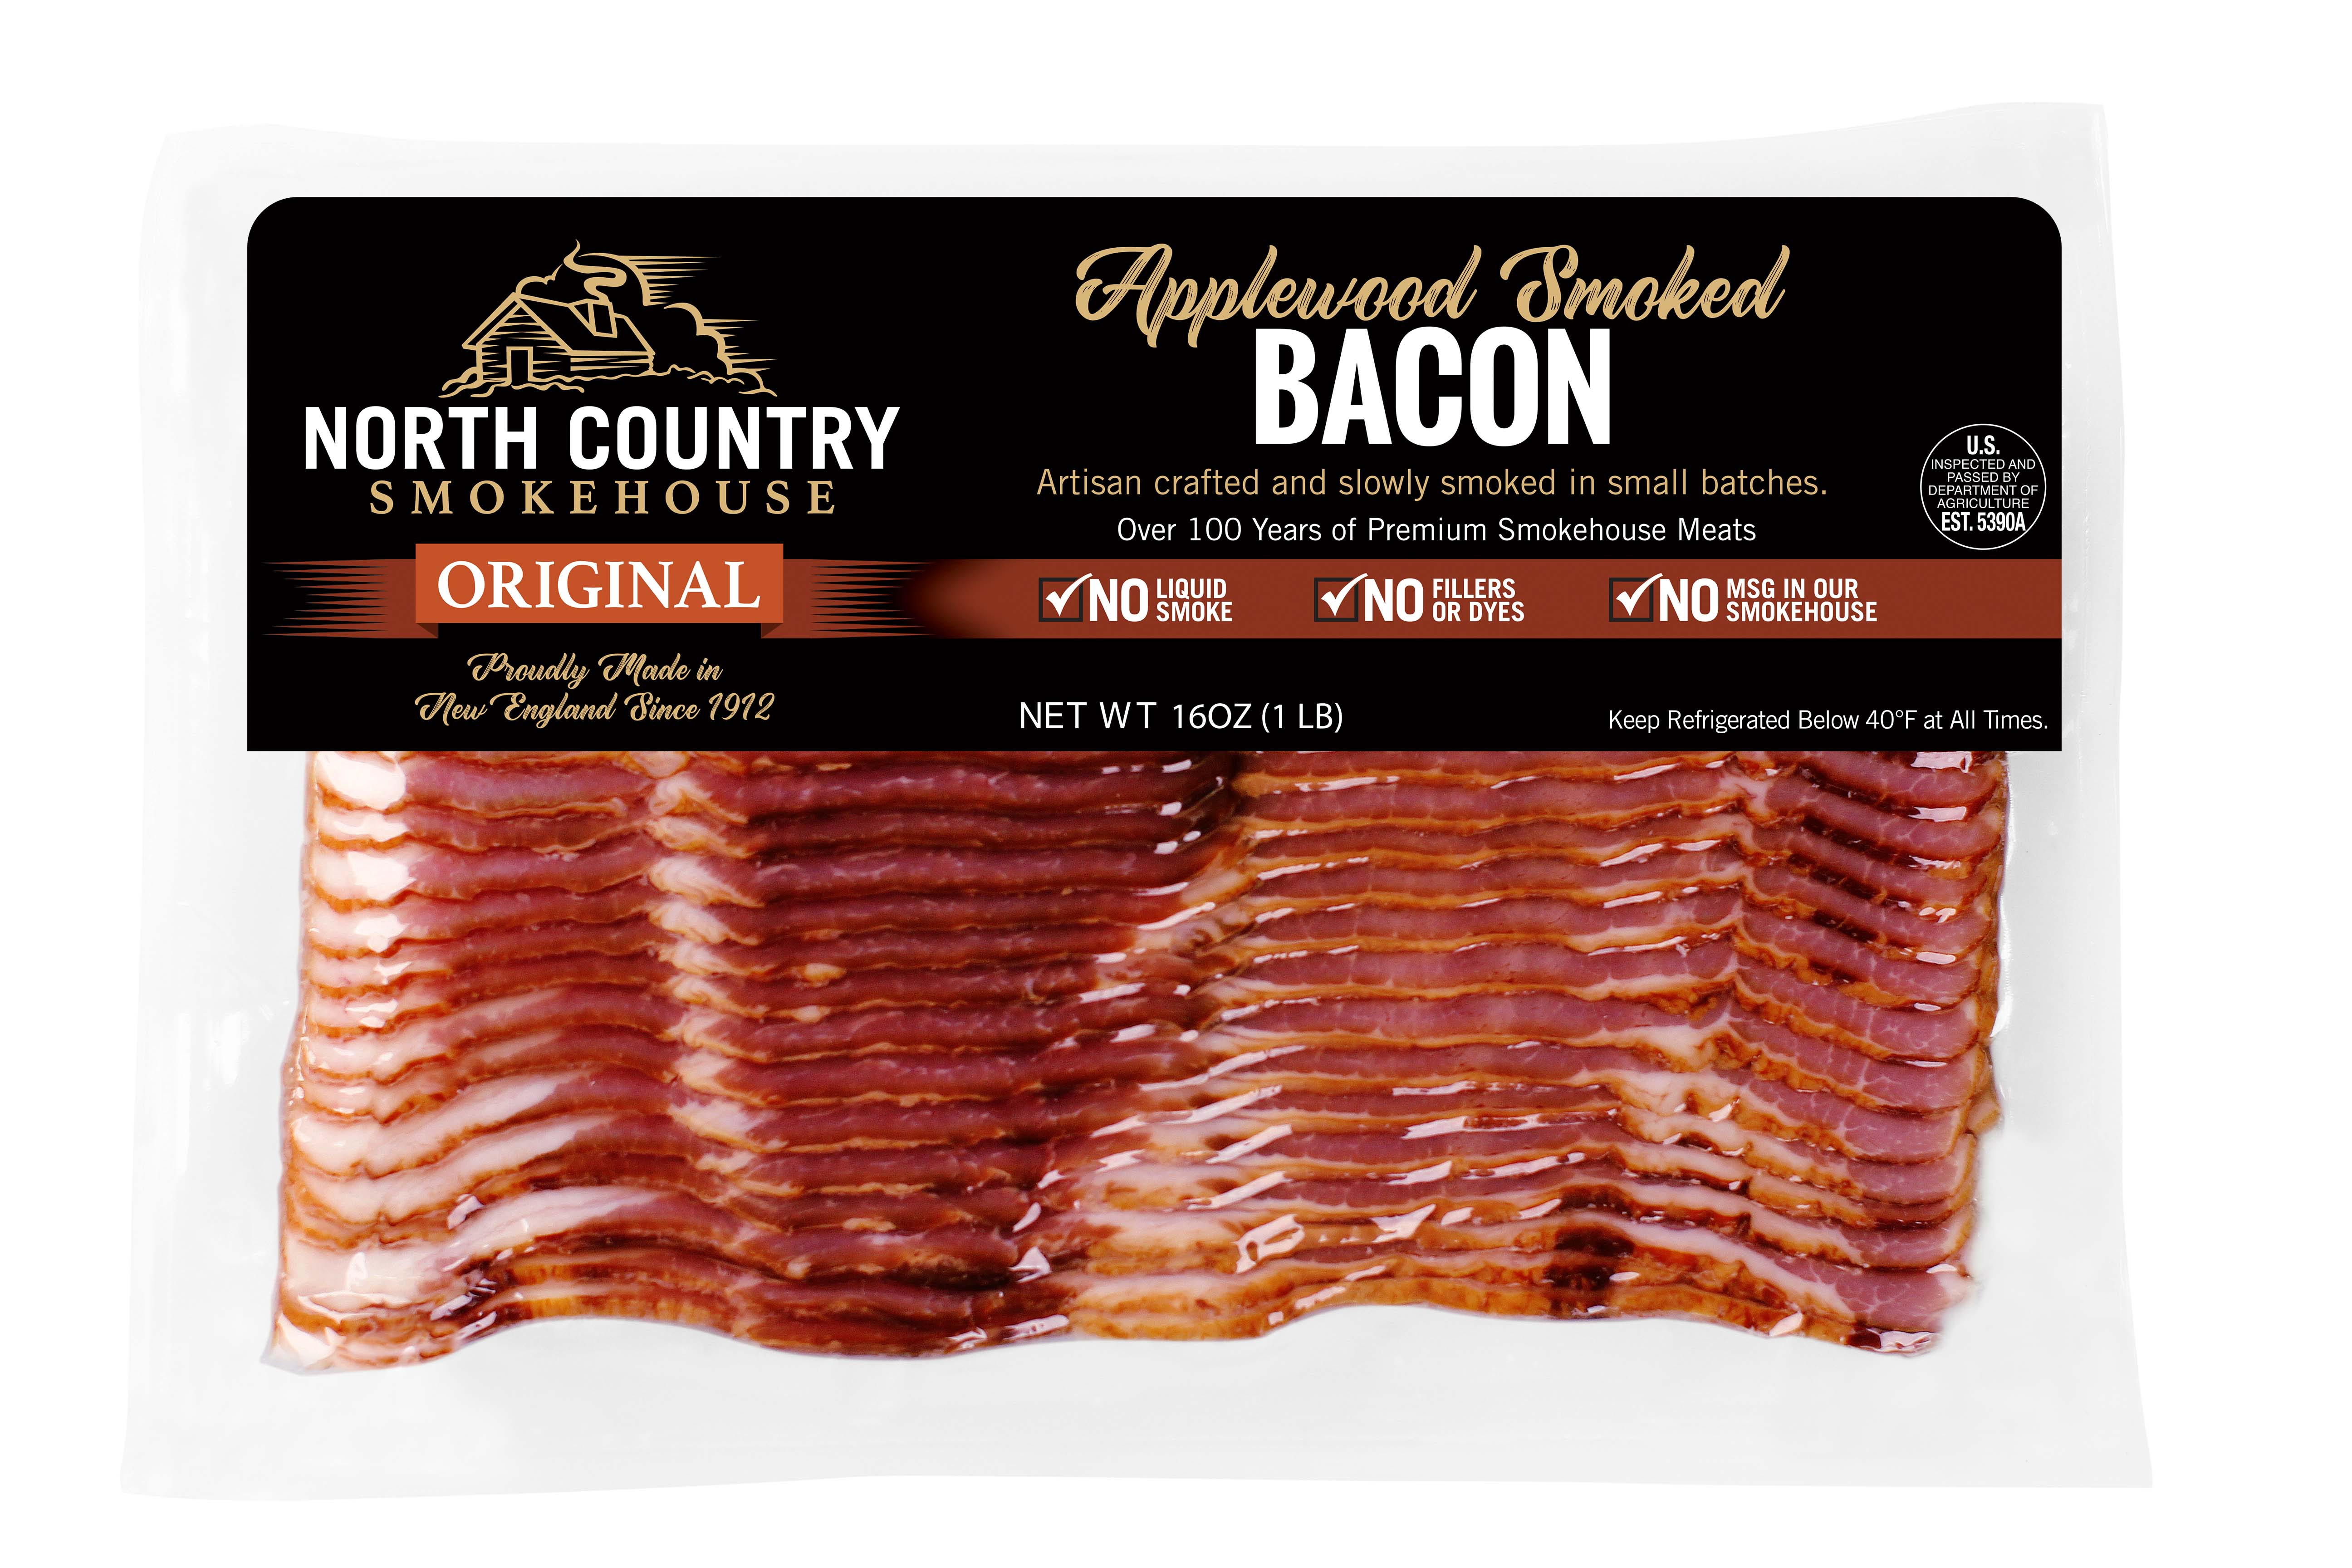 Original Applewood Smoked Bacon  - 2, 1 lb. packages